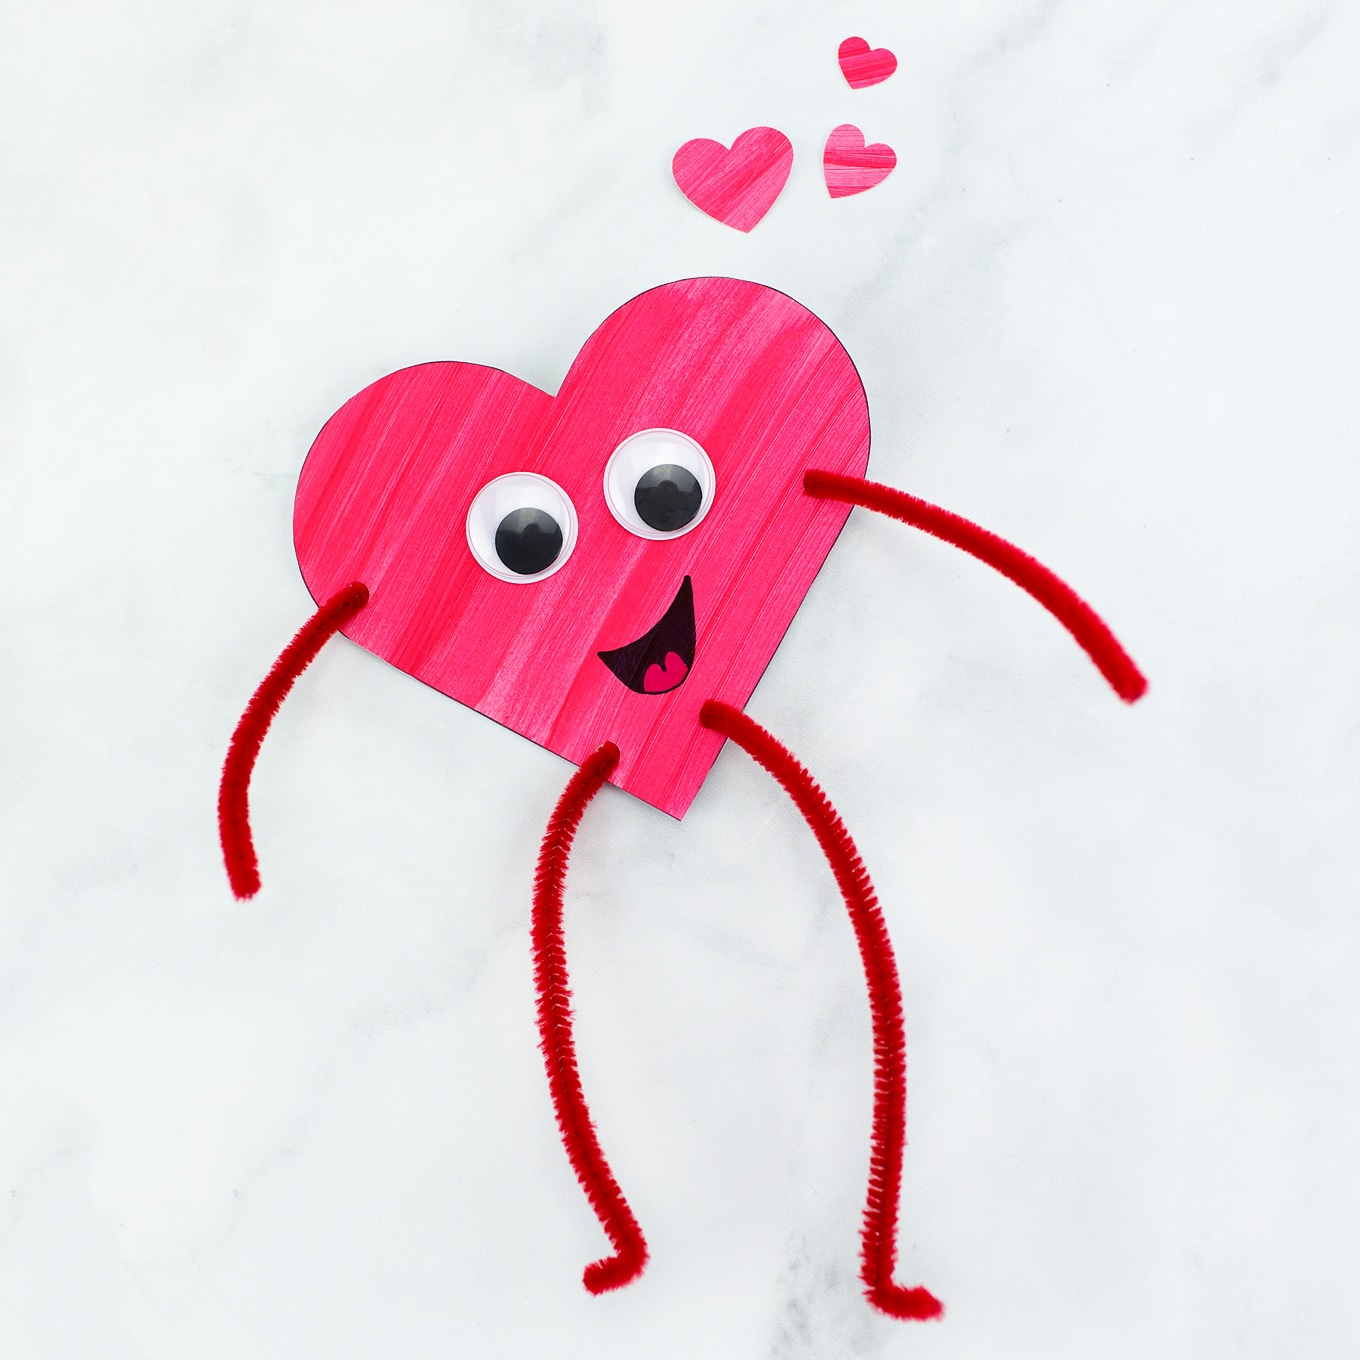 Heart Buddies Easy Valentine's Day Craft for Kids